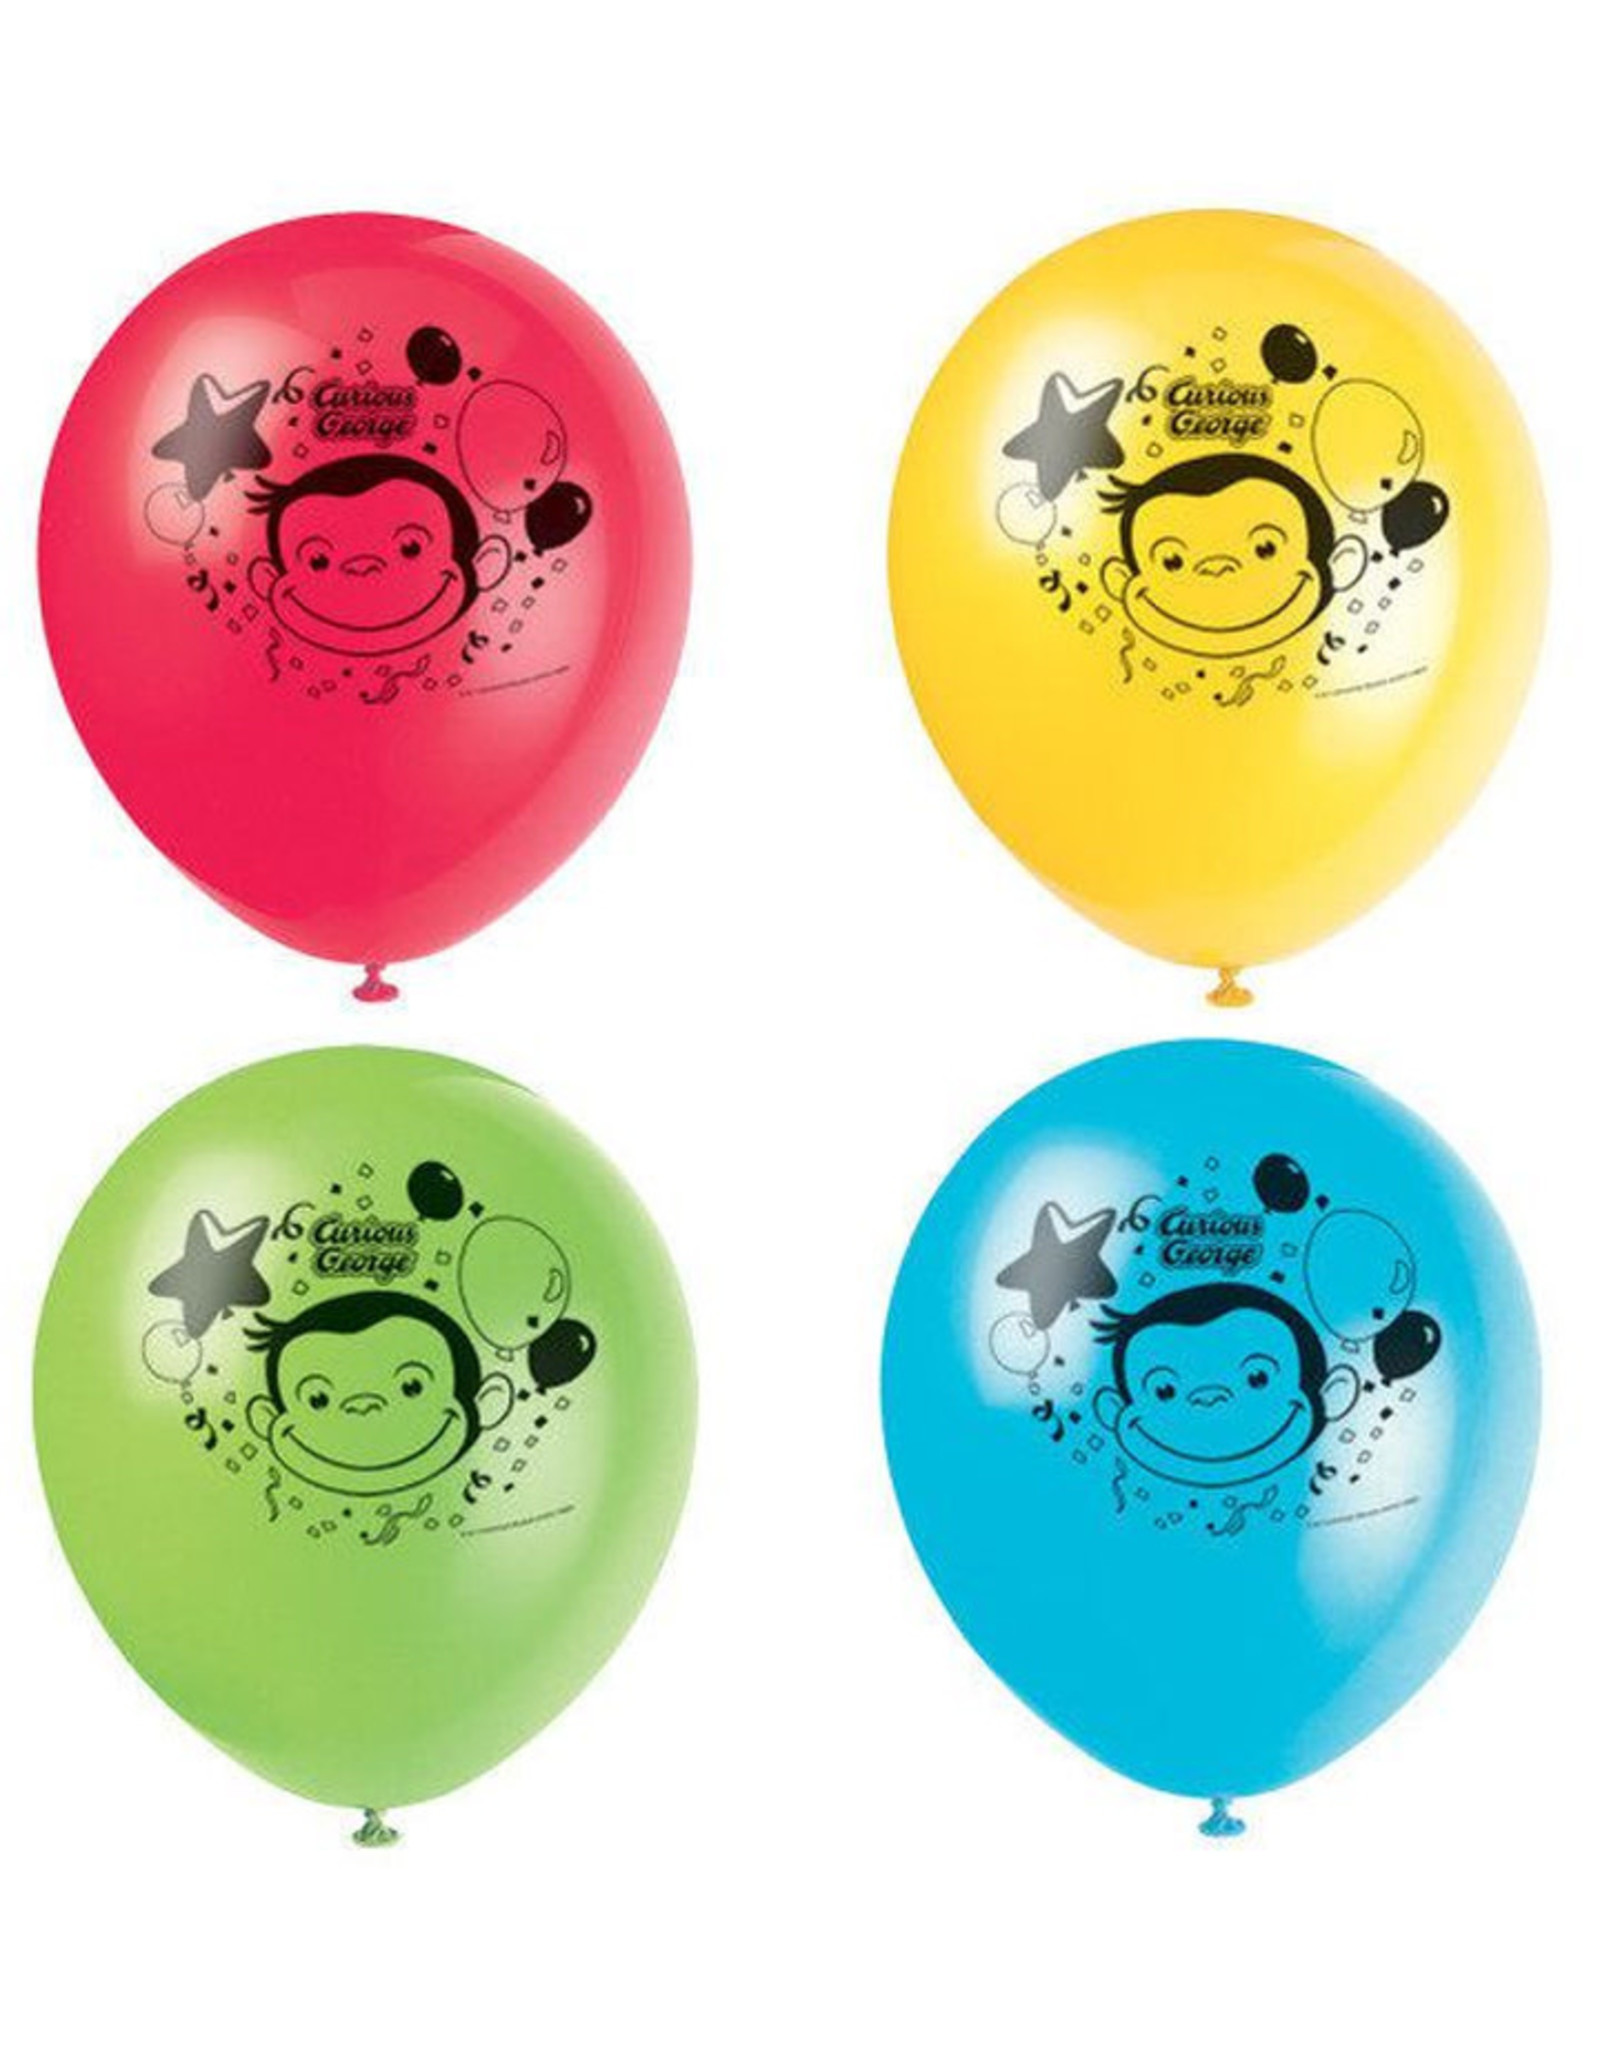 UNIQUE INDUSTRIES INC Curious George 12in Latex Balloons - 8ct